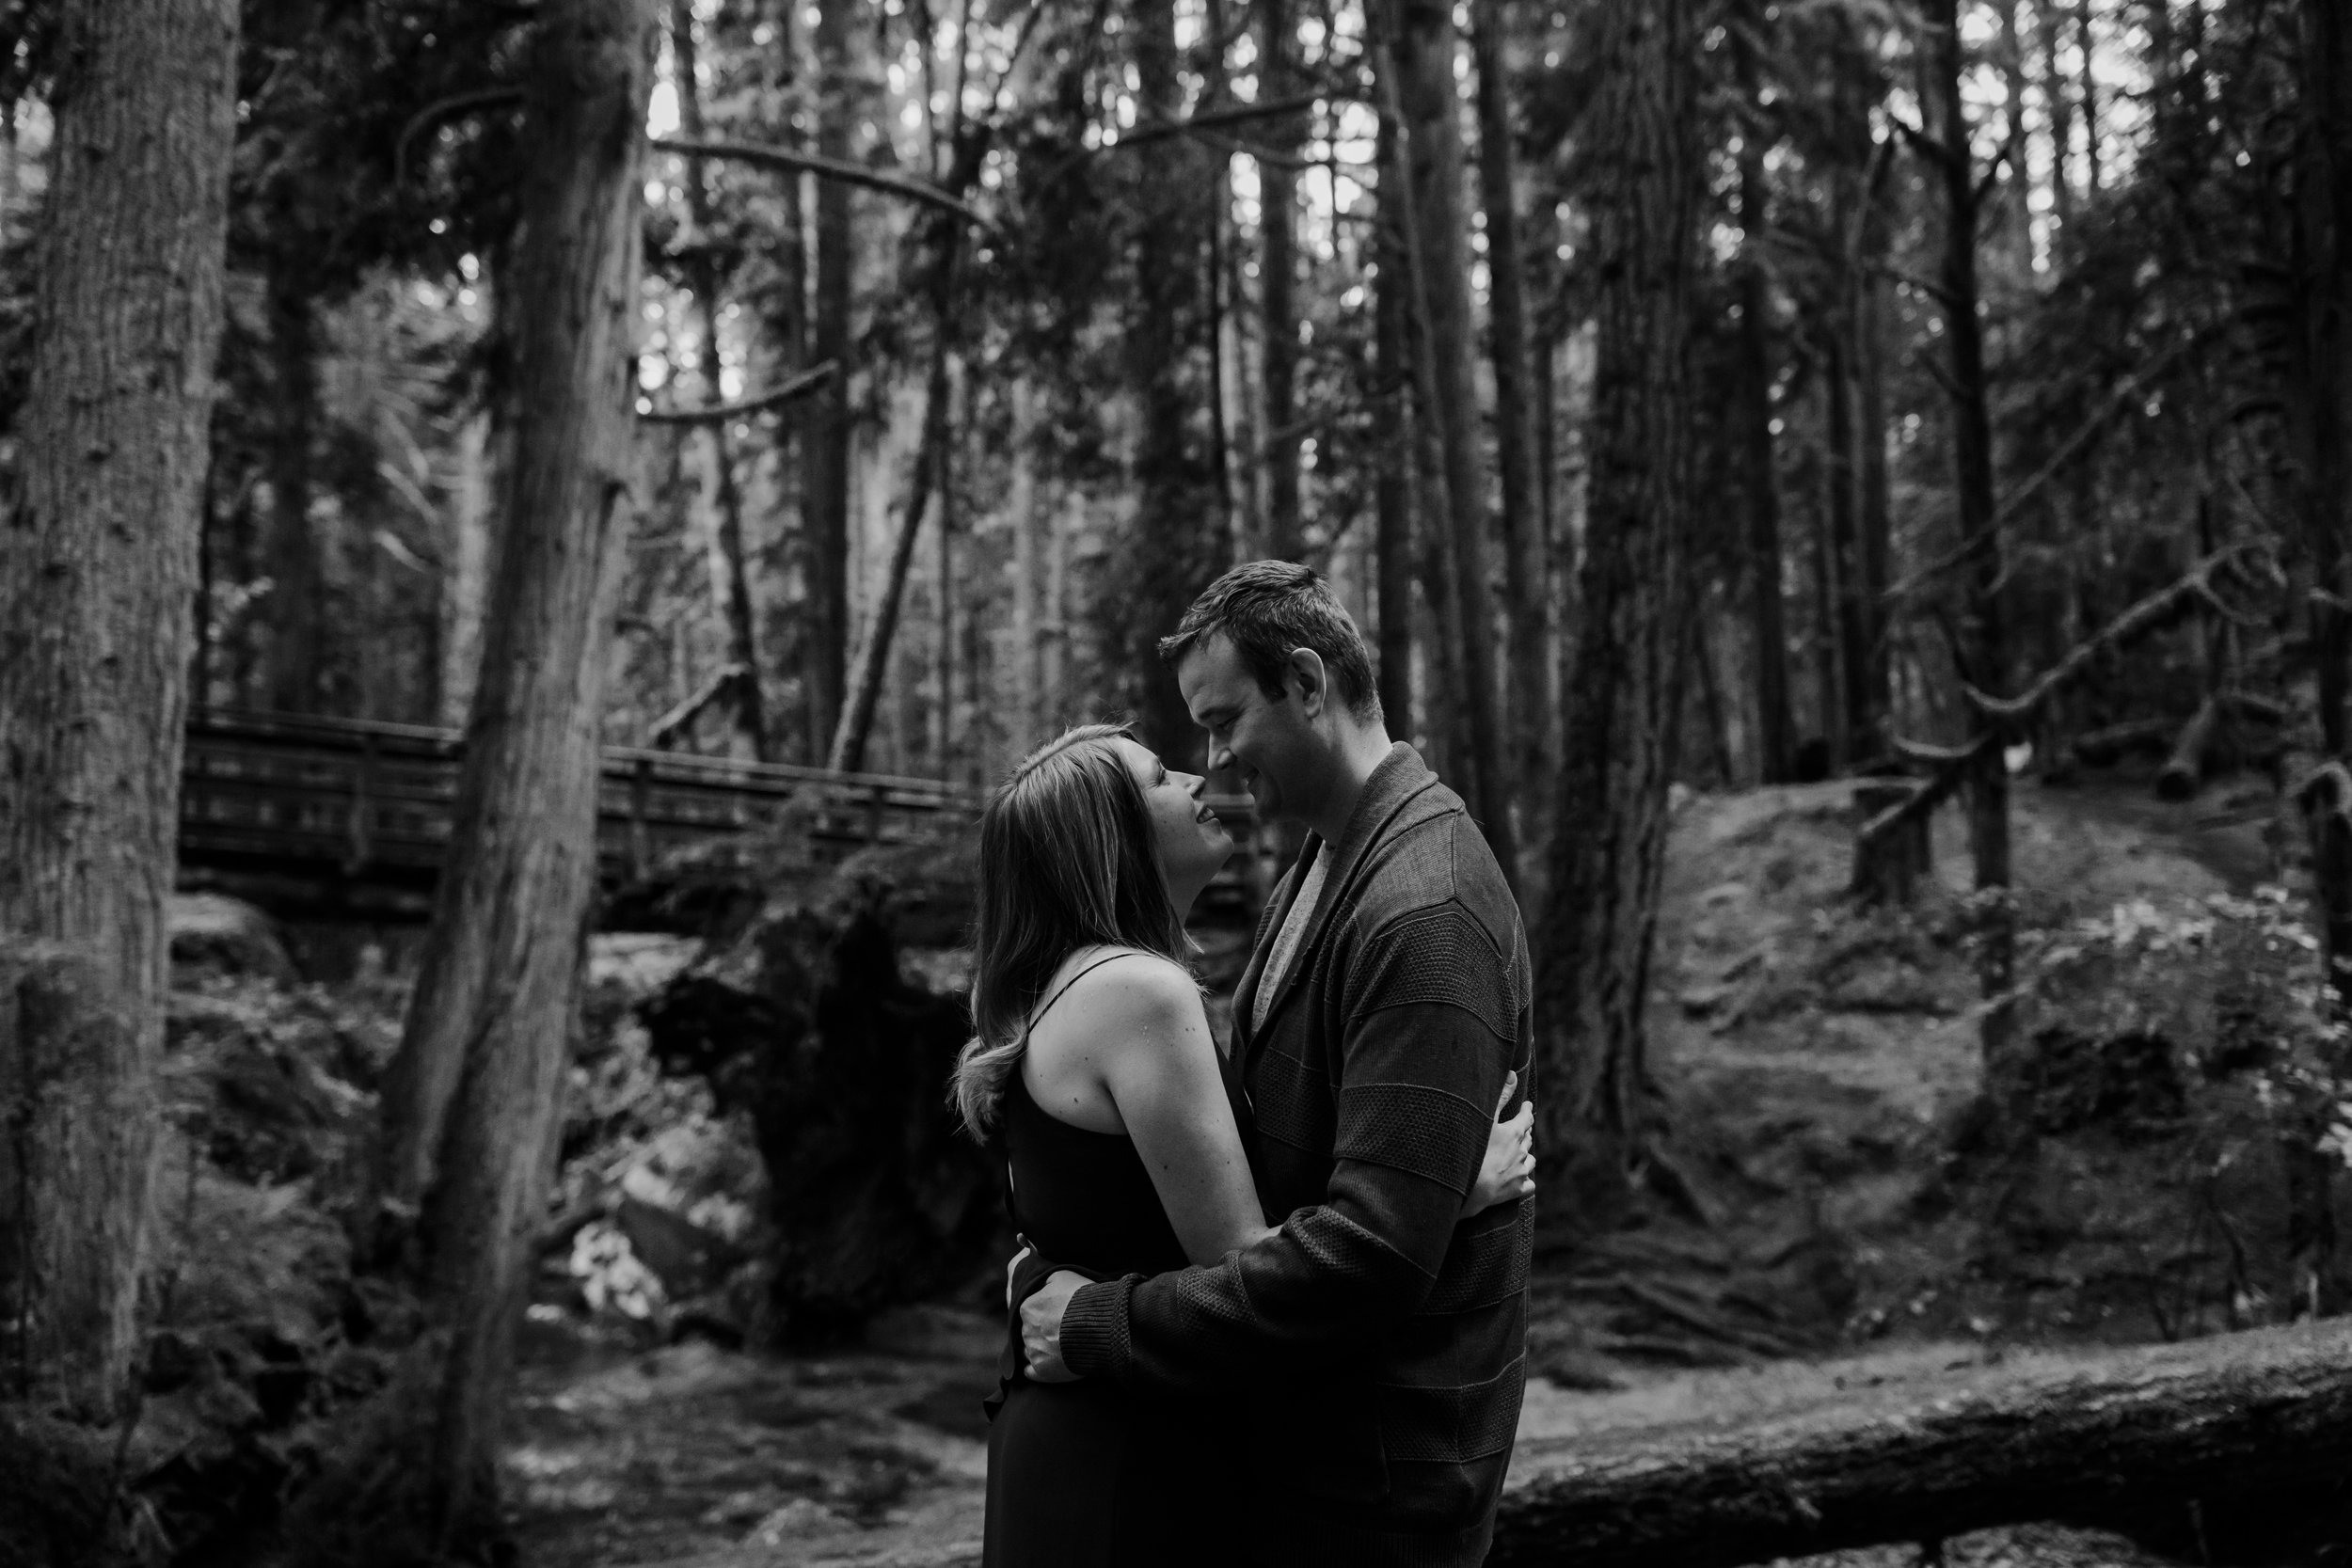 SUNSHINE COAST FOREST & BEACH ENGAGEMENT PHOTOS — Ashley & Antoine — JENNIFER PICARD PHOTOGRAPHY227.JPG